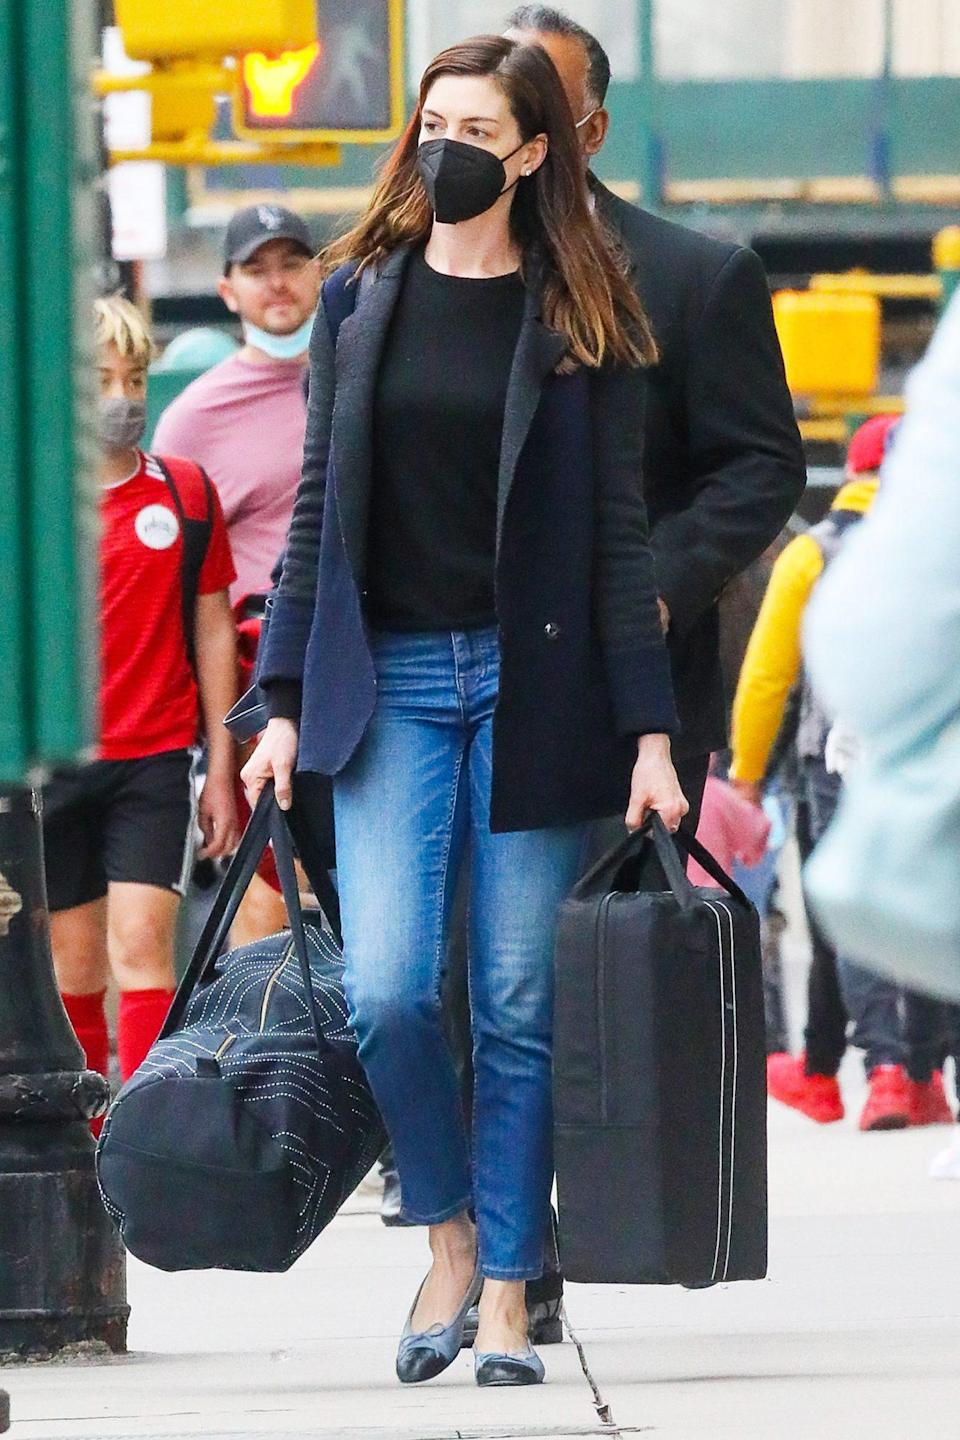 <p>Anne Hathaway carries luggage to her car as husband Adam Shulman waits to driver her on Sunday in N.Y.C.</p>